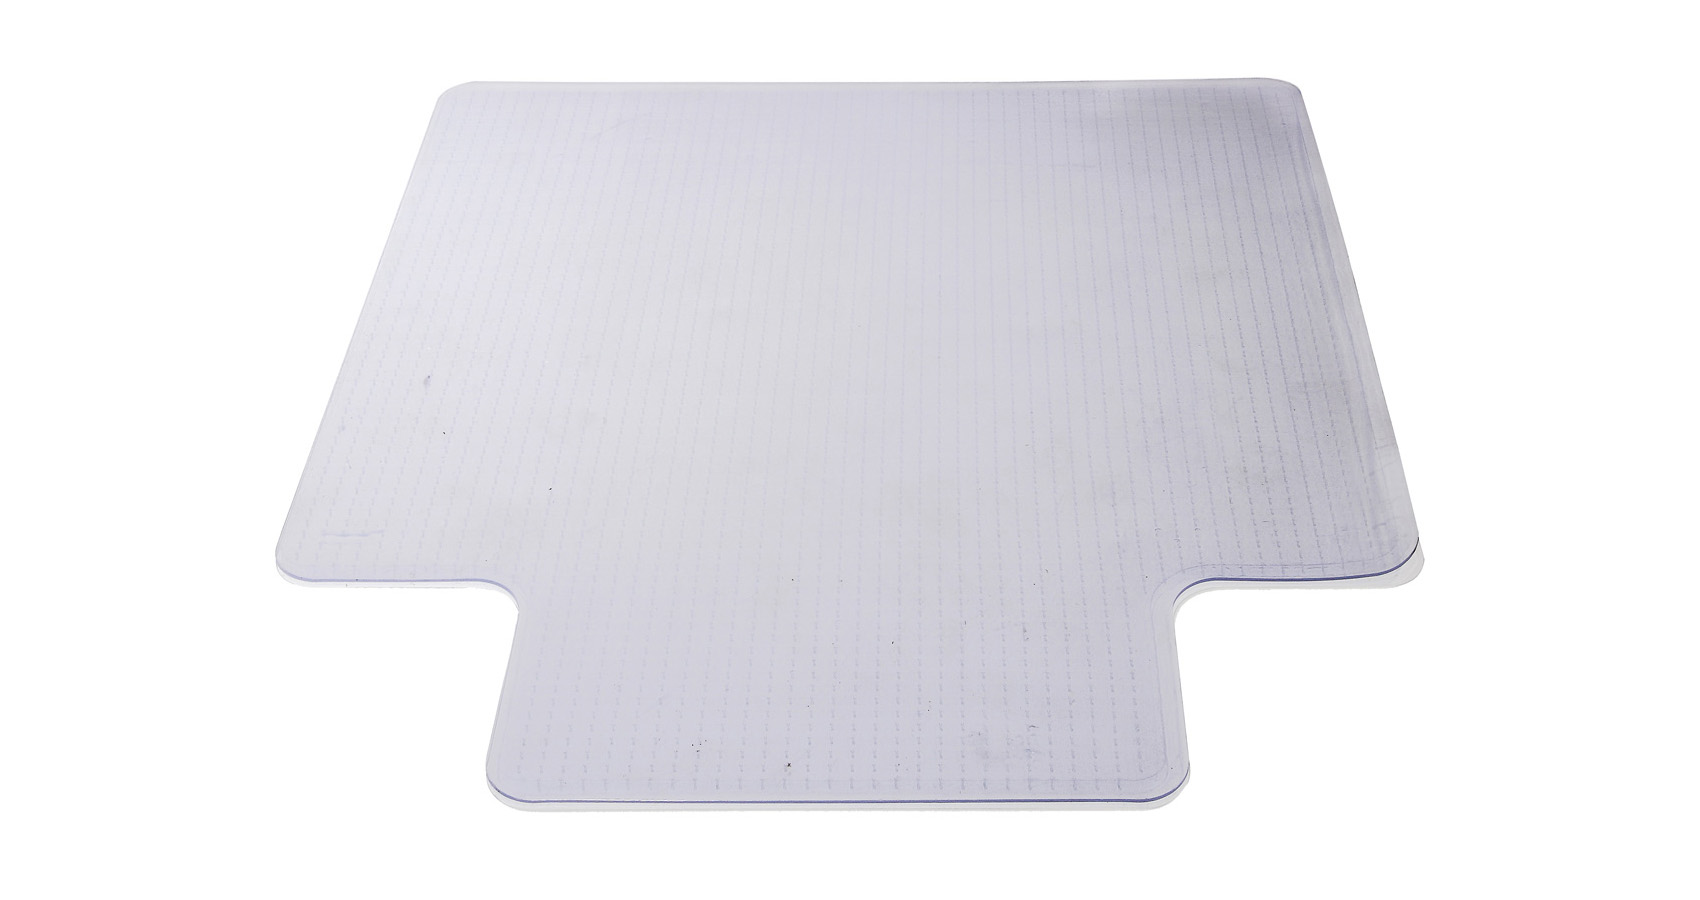 MA212-Hard Surface Chairmat - 3.5mm Thick - Small - 1220x915